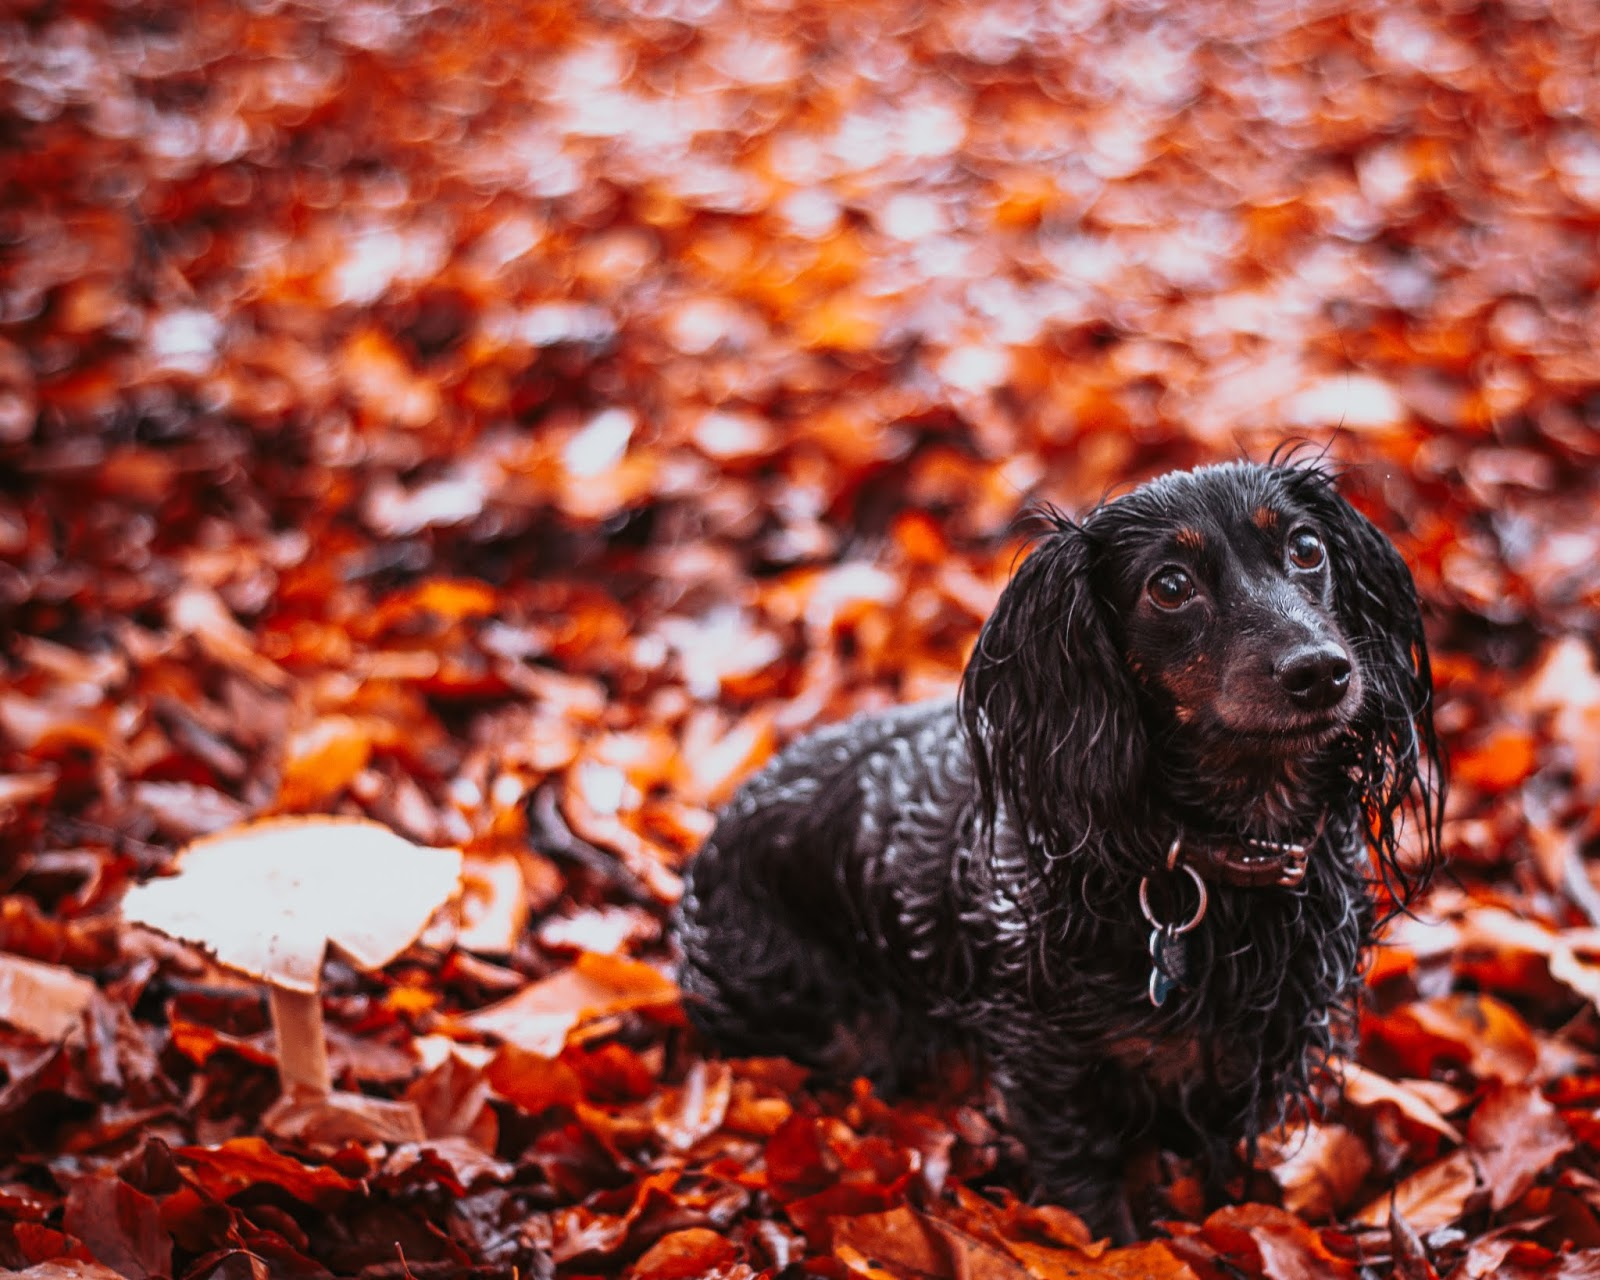 hetty dachshund in autumn leaves blenheim palace liquid grain liquidgrain